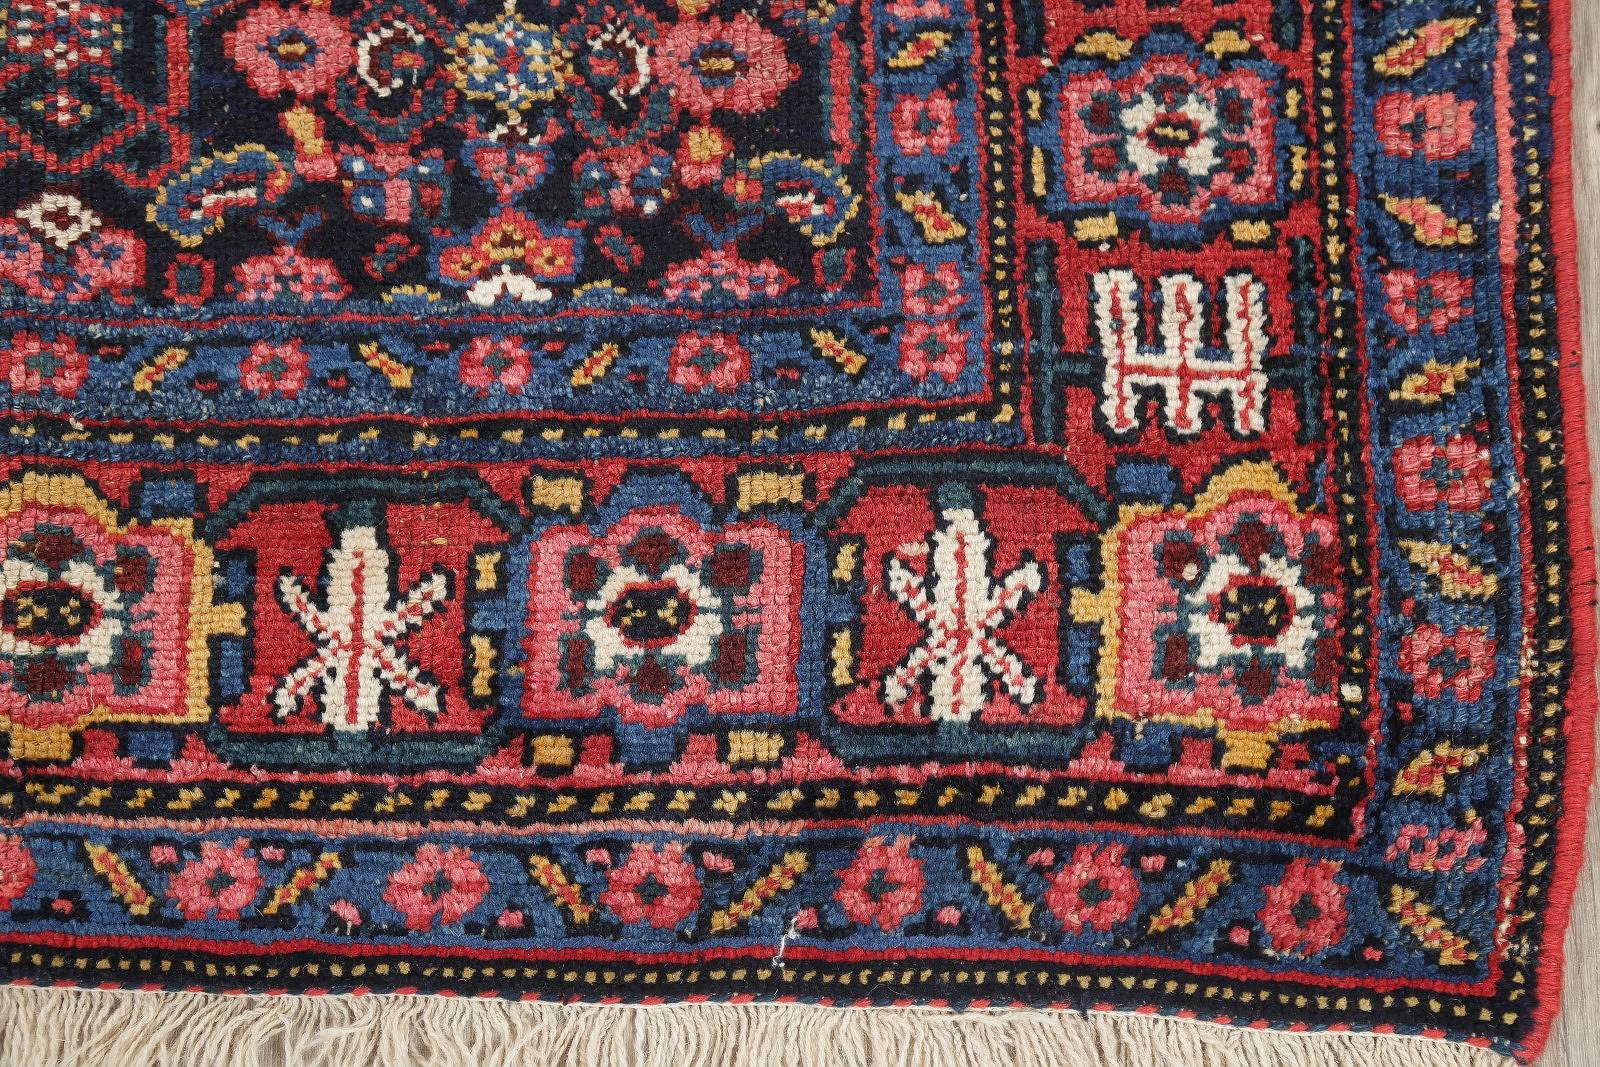 Vegetable Dye Antique Geometric Bidjar Persian Handmade 4x9 Wool Runner Rug